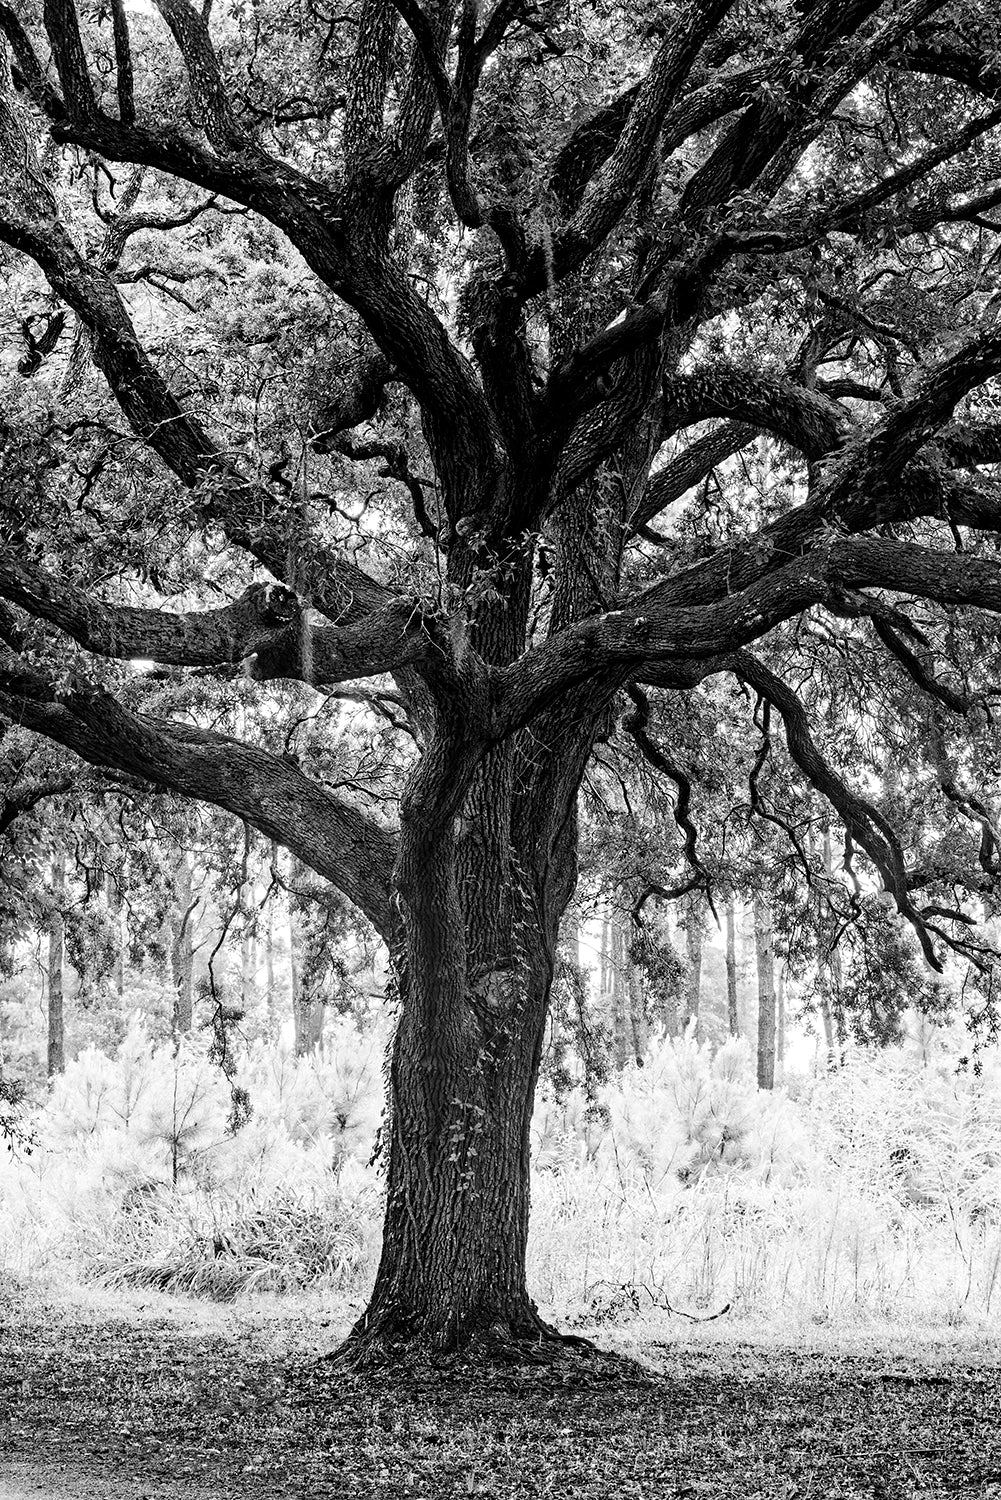 Edisto Island Oak - Black and White Landscape Photograph by Keith Dotson. Buy a fine art print.